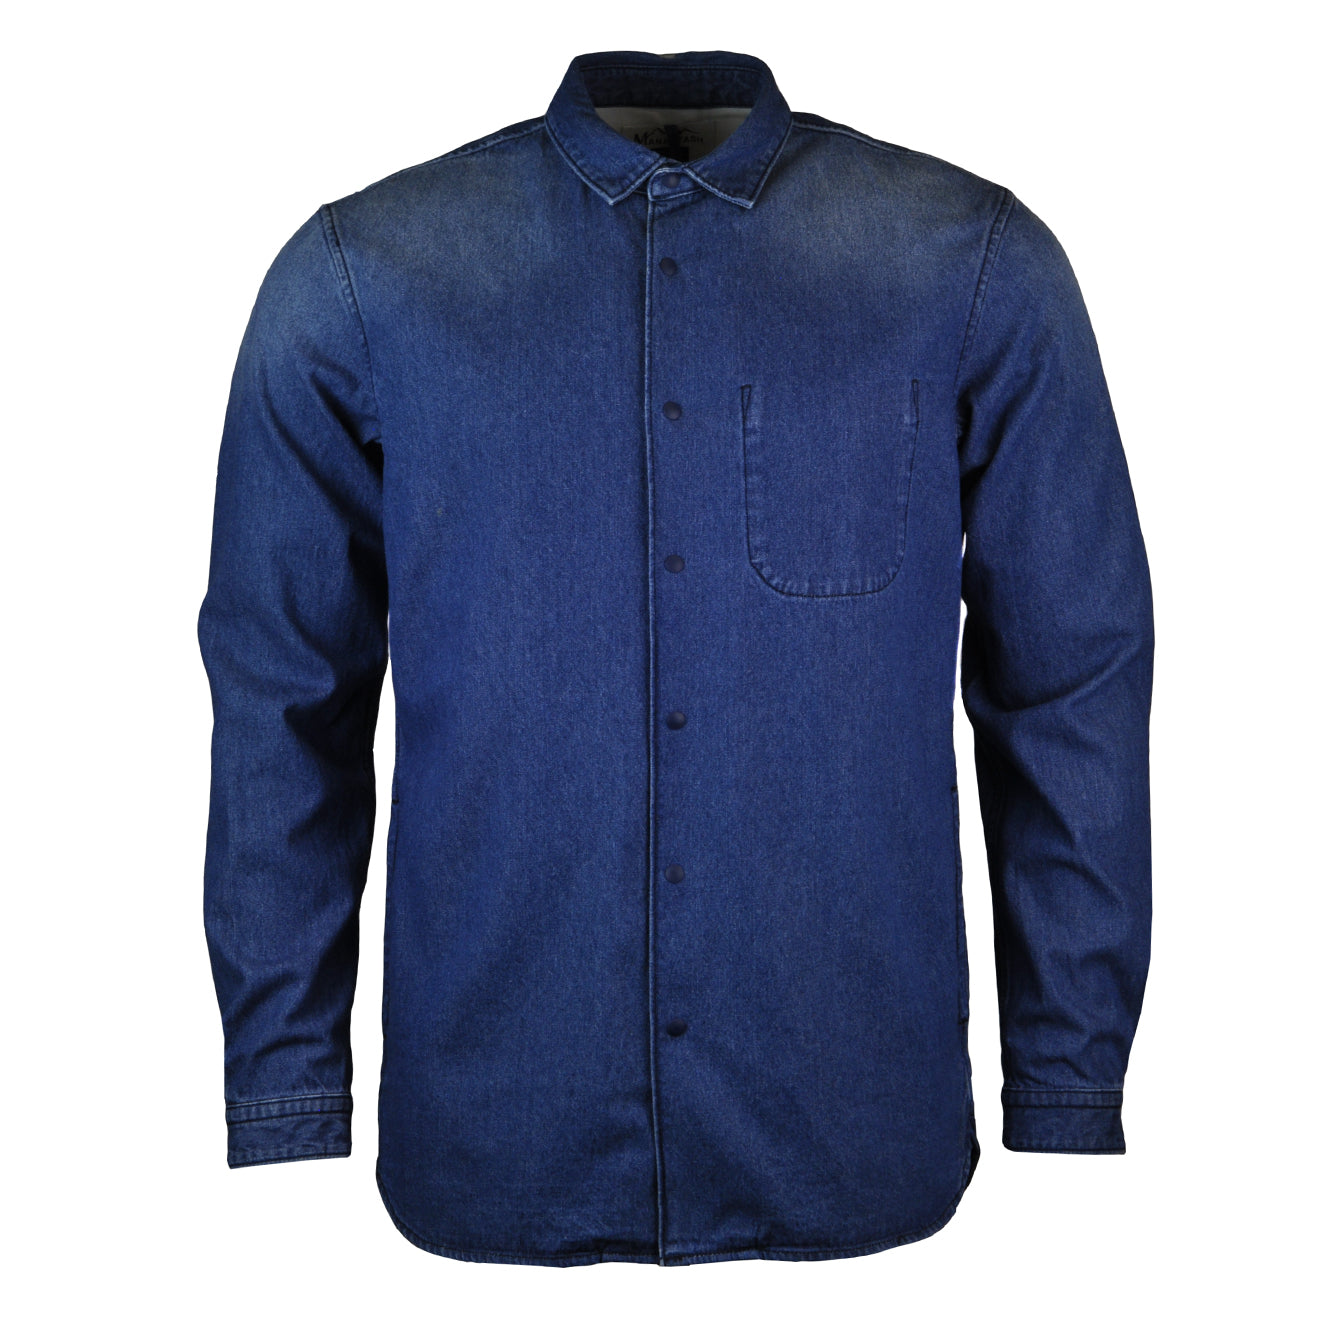 Manastash OD shirt jacket indigo